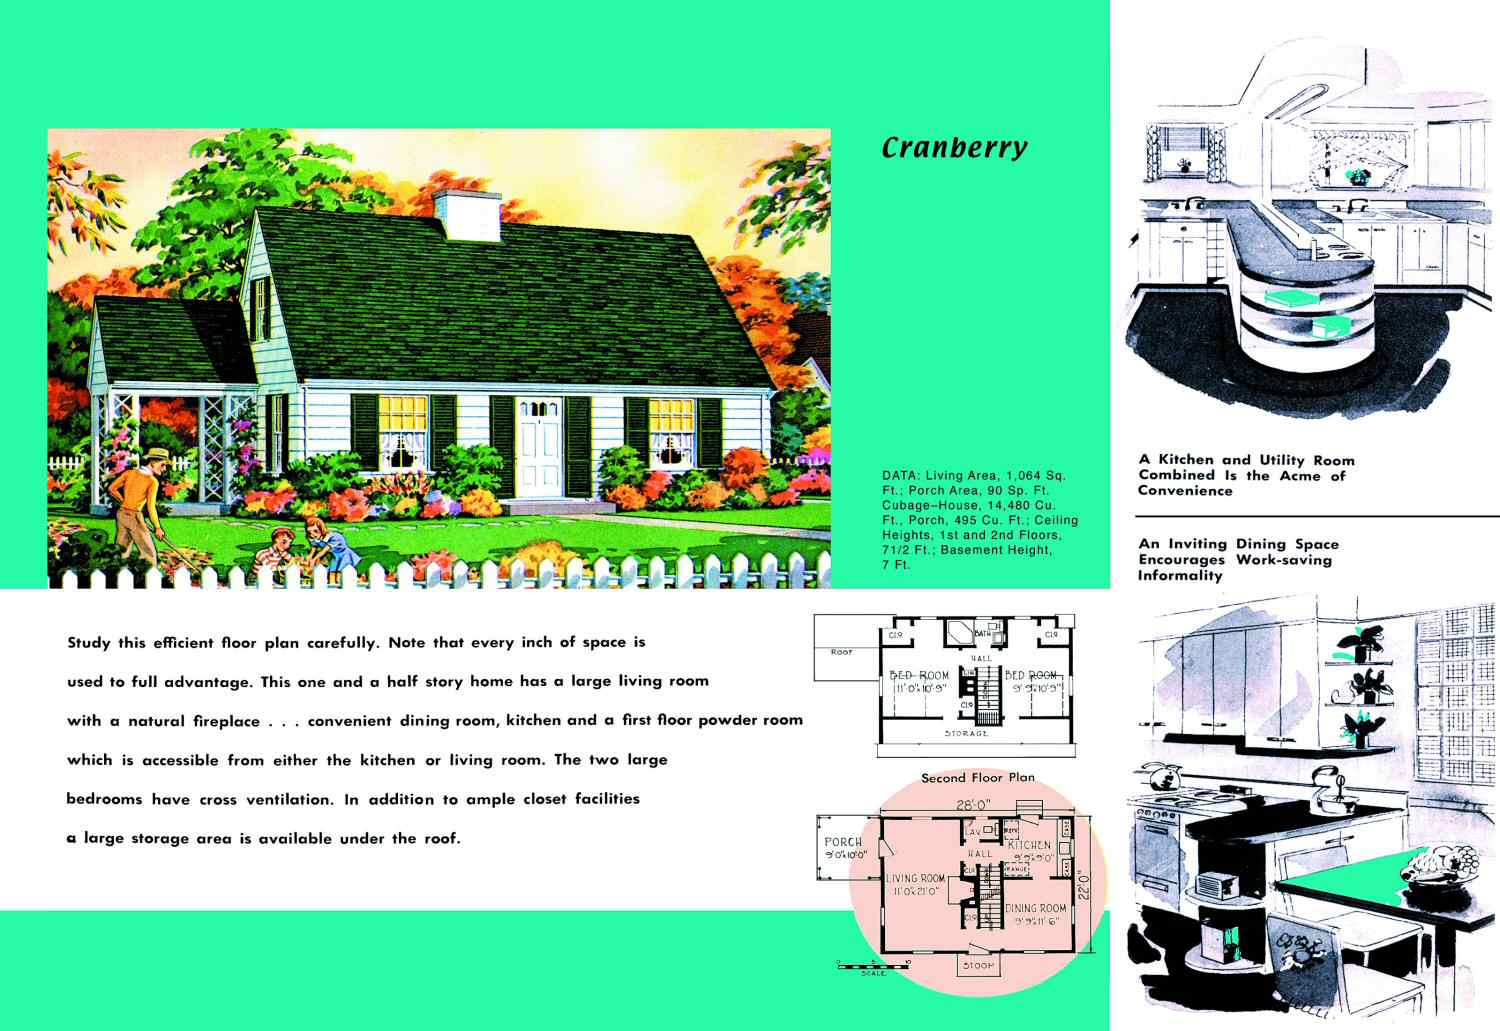 1950s floor plan and rendering of Cape Cod house called Cranberry